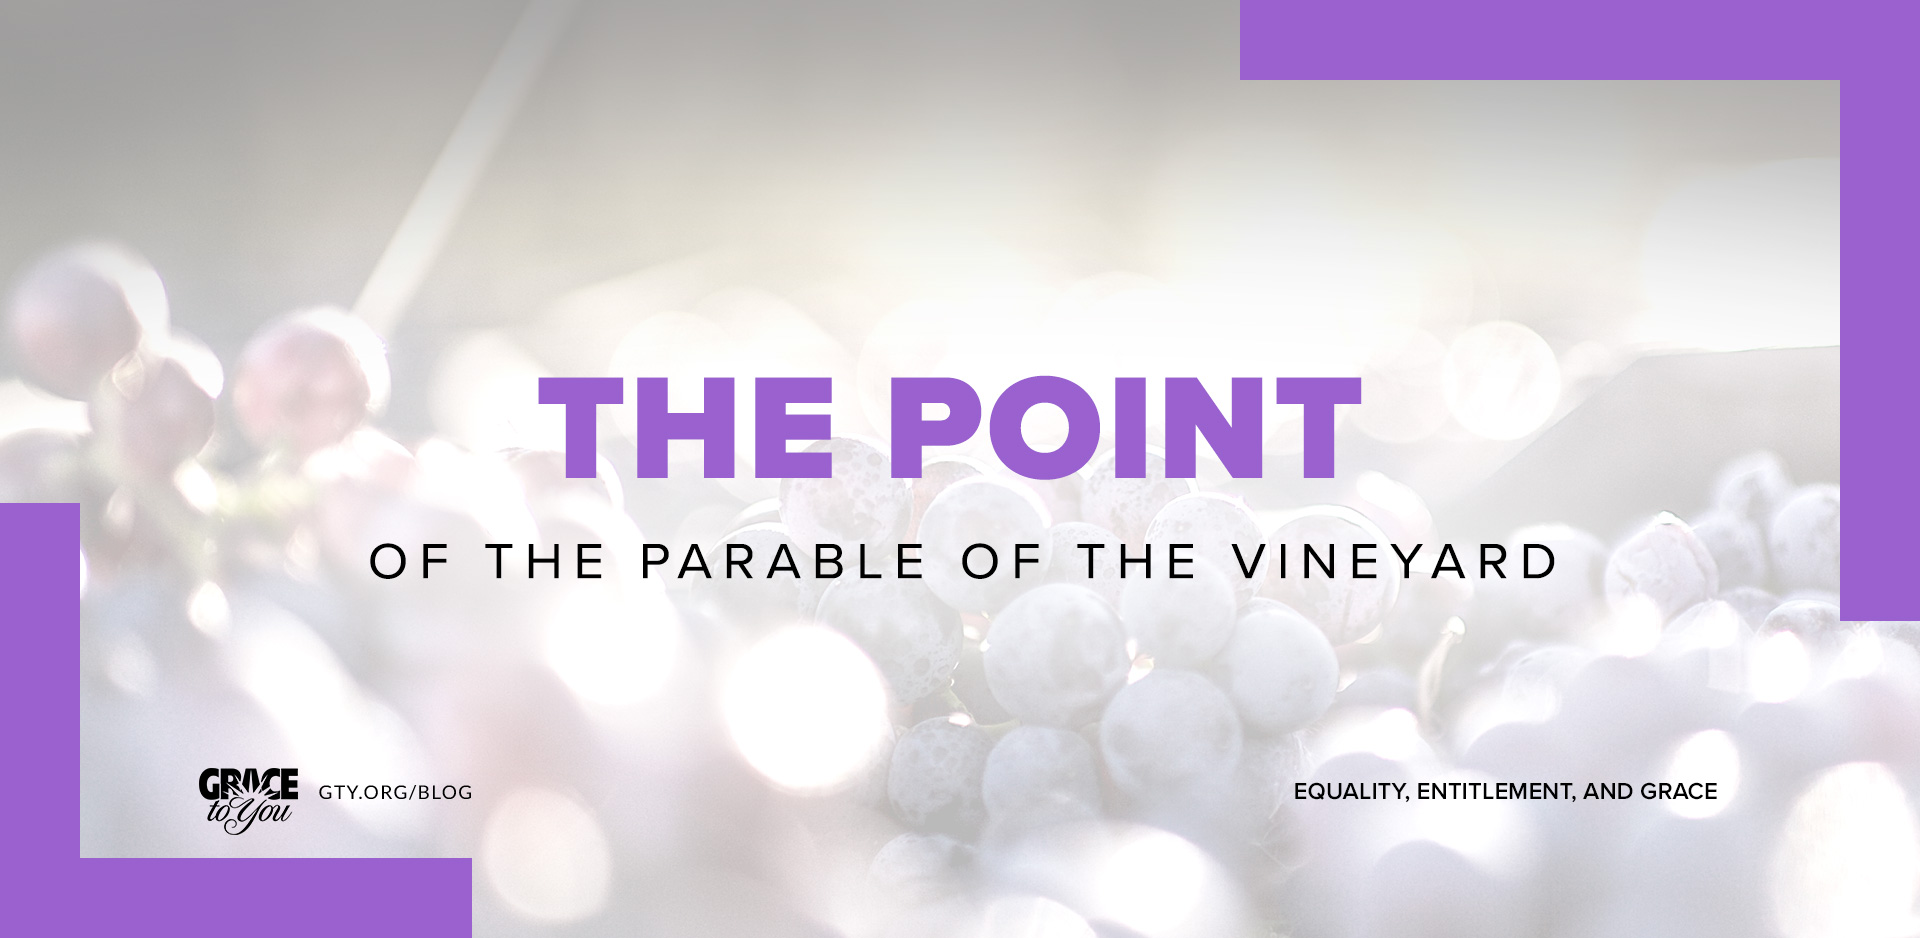 The Point of the Parable of the Vineyard